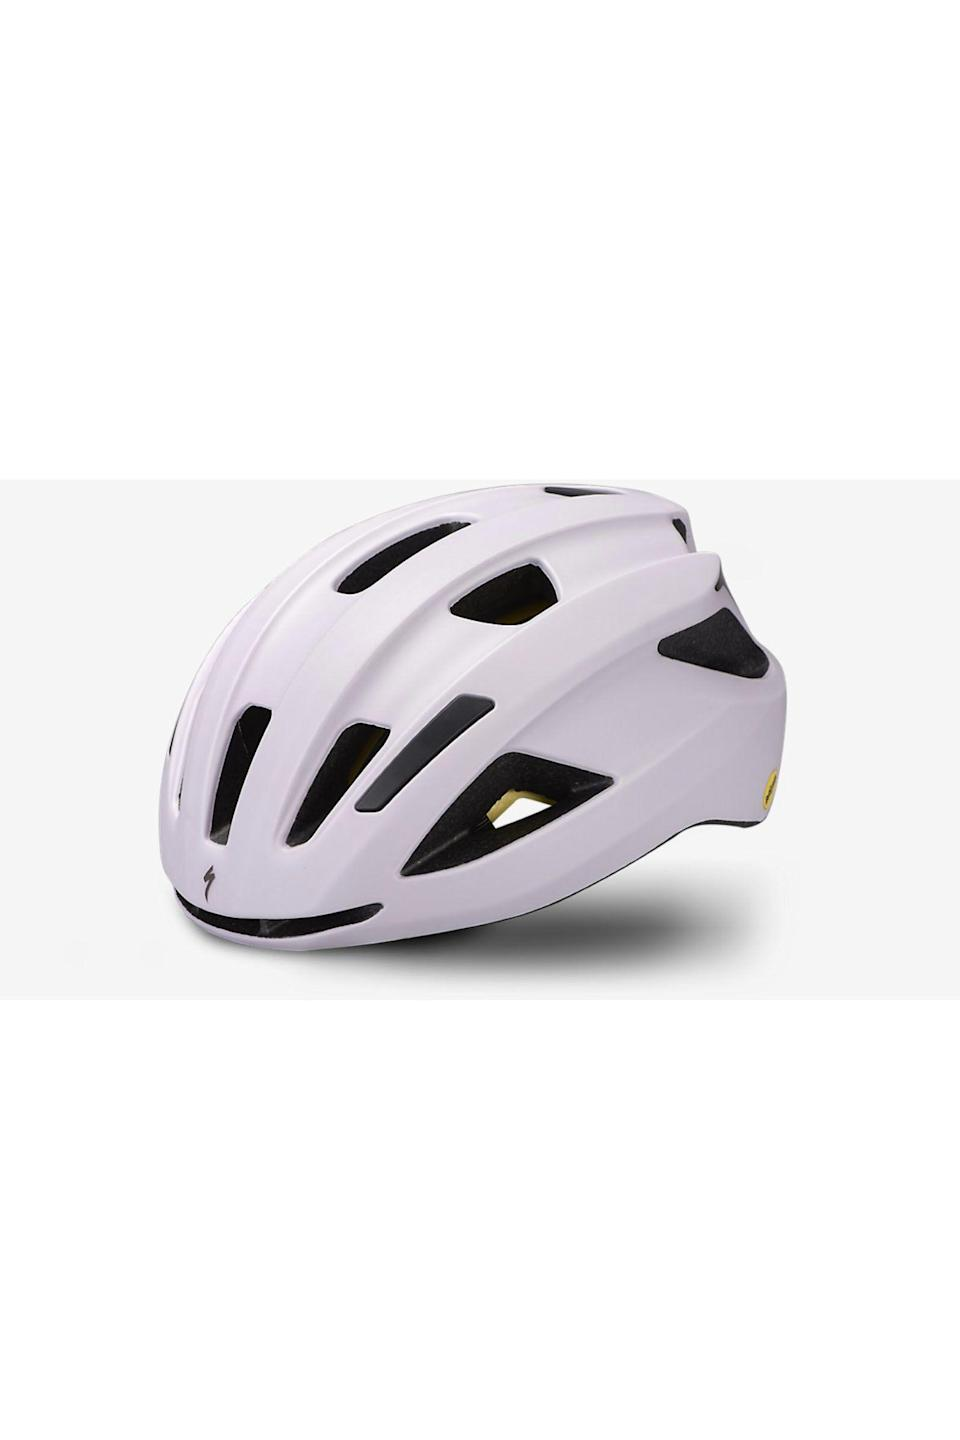 """<p><strong>Specialized</strong></p><p>specialized.com</p><p><strong>$50.00</strong></p><p><a href=""""https://www.specialized.com/us/en/align-ii/p/186472?color=297725-186472&searchText=60821-0002"""" rel=""""nofollow noopener"""" target=""""_blank"""" data-ylk=""""slk:Shop Now"""" class=""""link rapid-noclick-resp"""">Shop Now</a></p><p>According to the site, this is the only $50 helmet to earn the highest 5-star rating from """"independent testing done at the renowned Virginia Polytechnic Institute and State University."""" Impressive, right? So you'll get great value from this purchase, and you'll also look cute with its minimal shape and fun colors. </p>"""